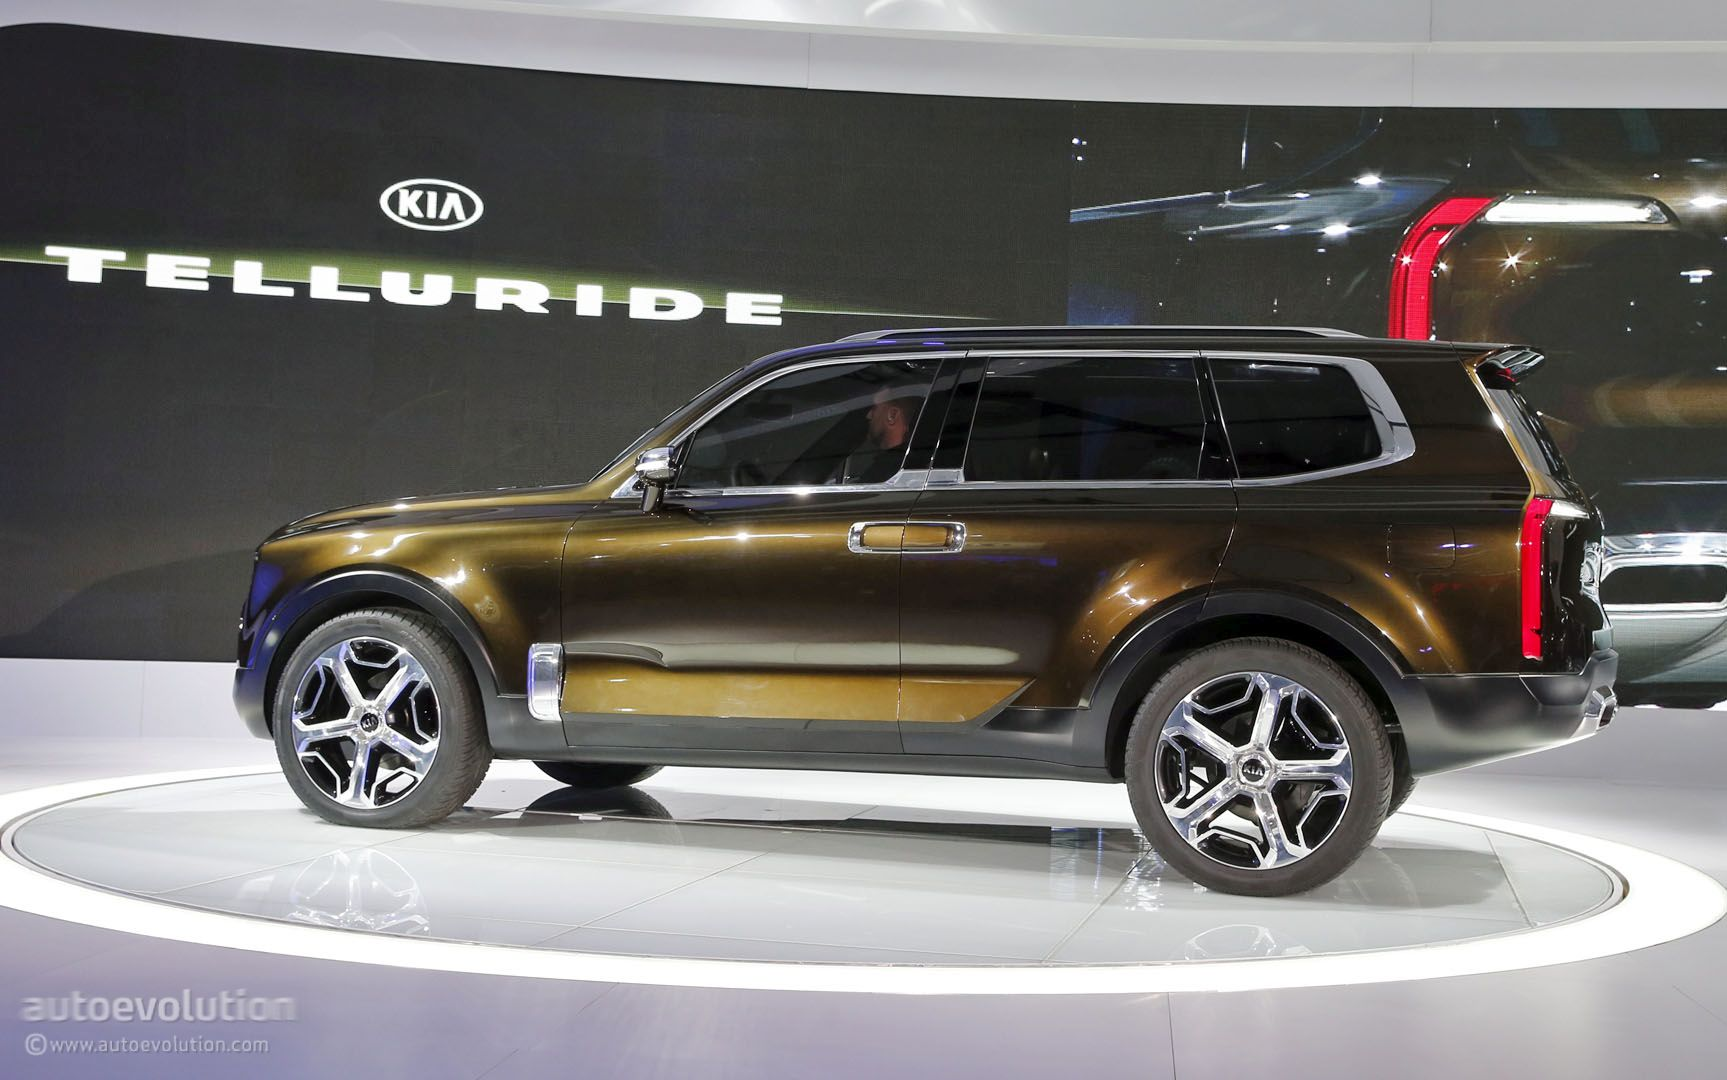 2019 Kia Telluride Suv Spied For The First Time Looks